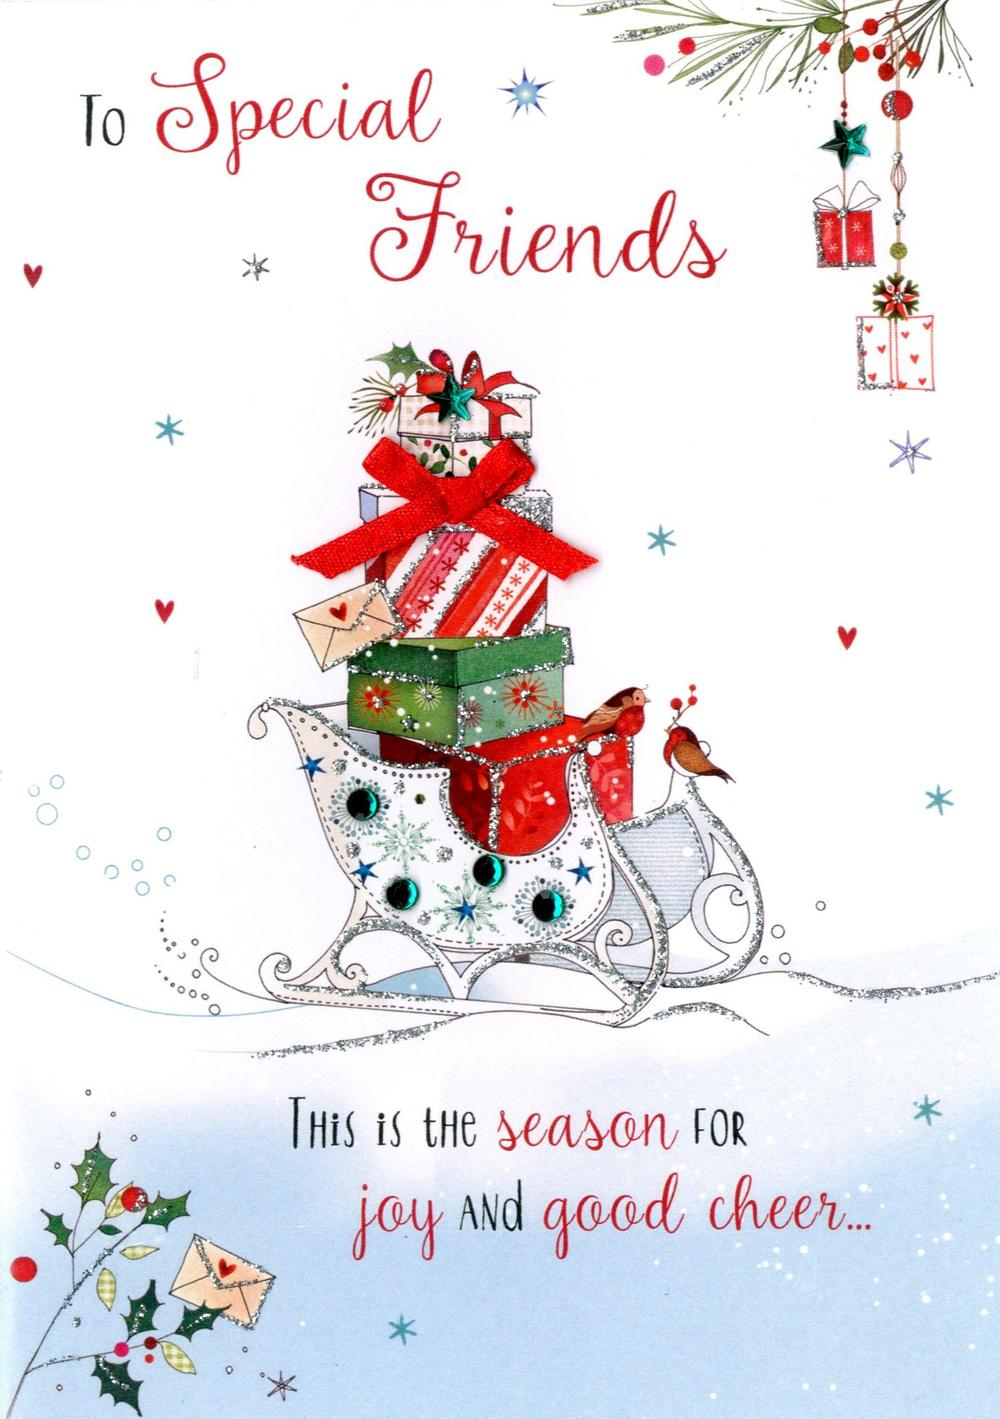 Special friends embellished christmas card cards love kates special friends embellished christmas card m4hsunfo